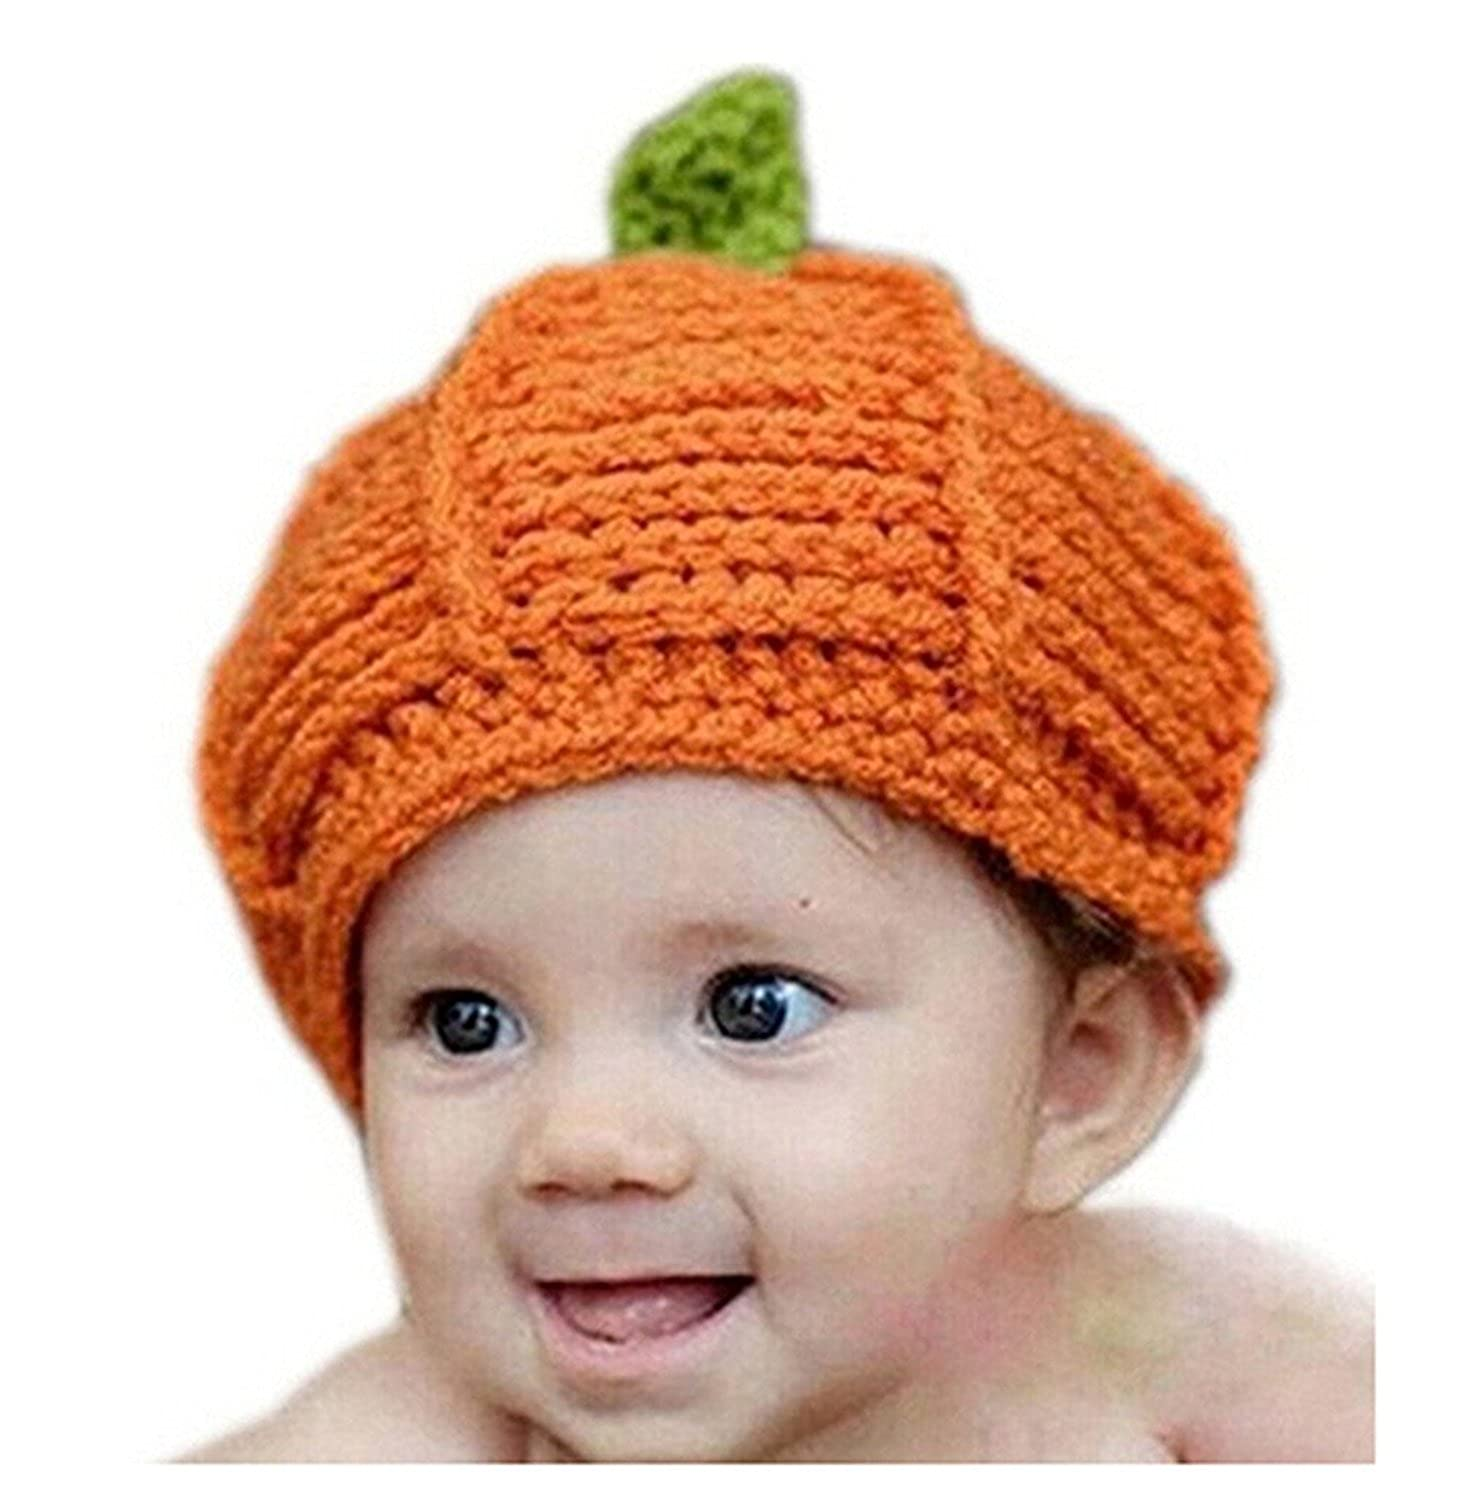 Tonsee® 1pc Pumpkin Cap Knit Hat for Baby Costume Photography Prop Suitable for 2-3 Years Old Baby